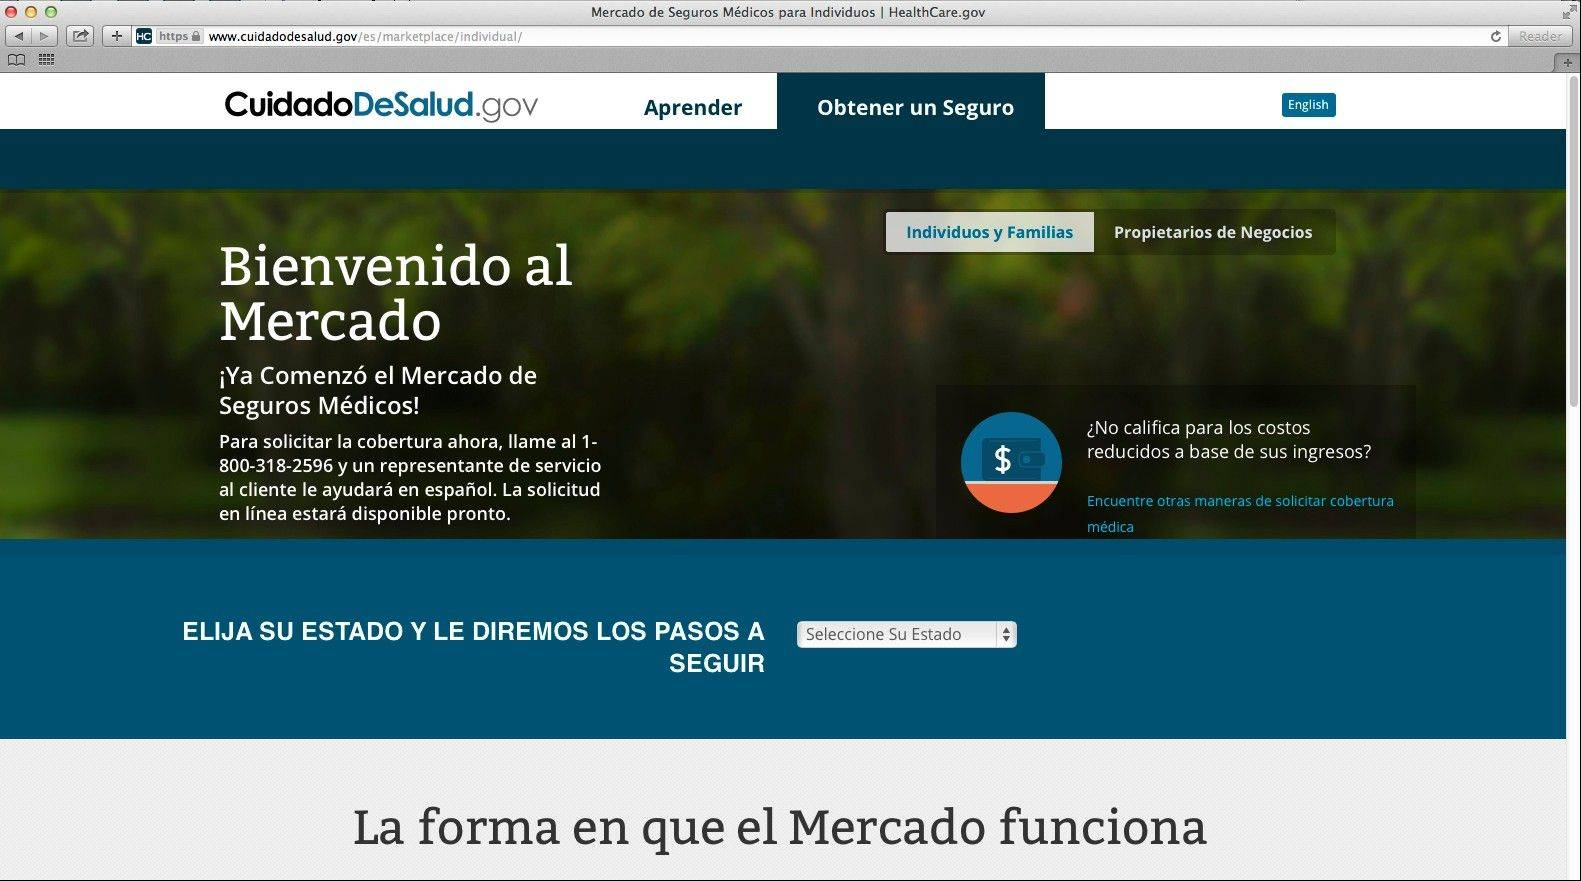 This screenshot made Tuesday, shows the U.S. Department of Health and Human Services' Web page for the Spanish language version HealthCare.gov. The Spanish version of HealthCare.gov now provides basic information, but still doesn't allow users to apply for insurance coverage online.